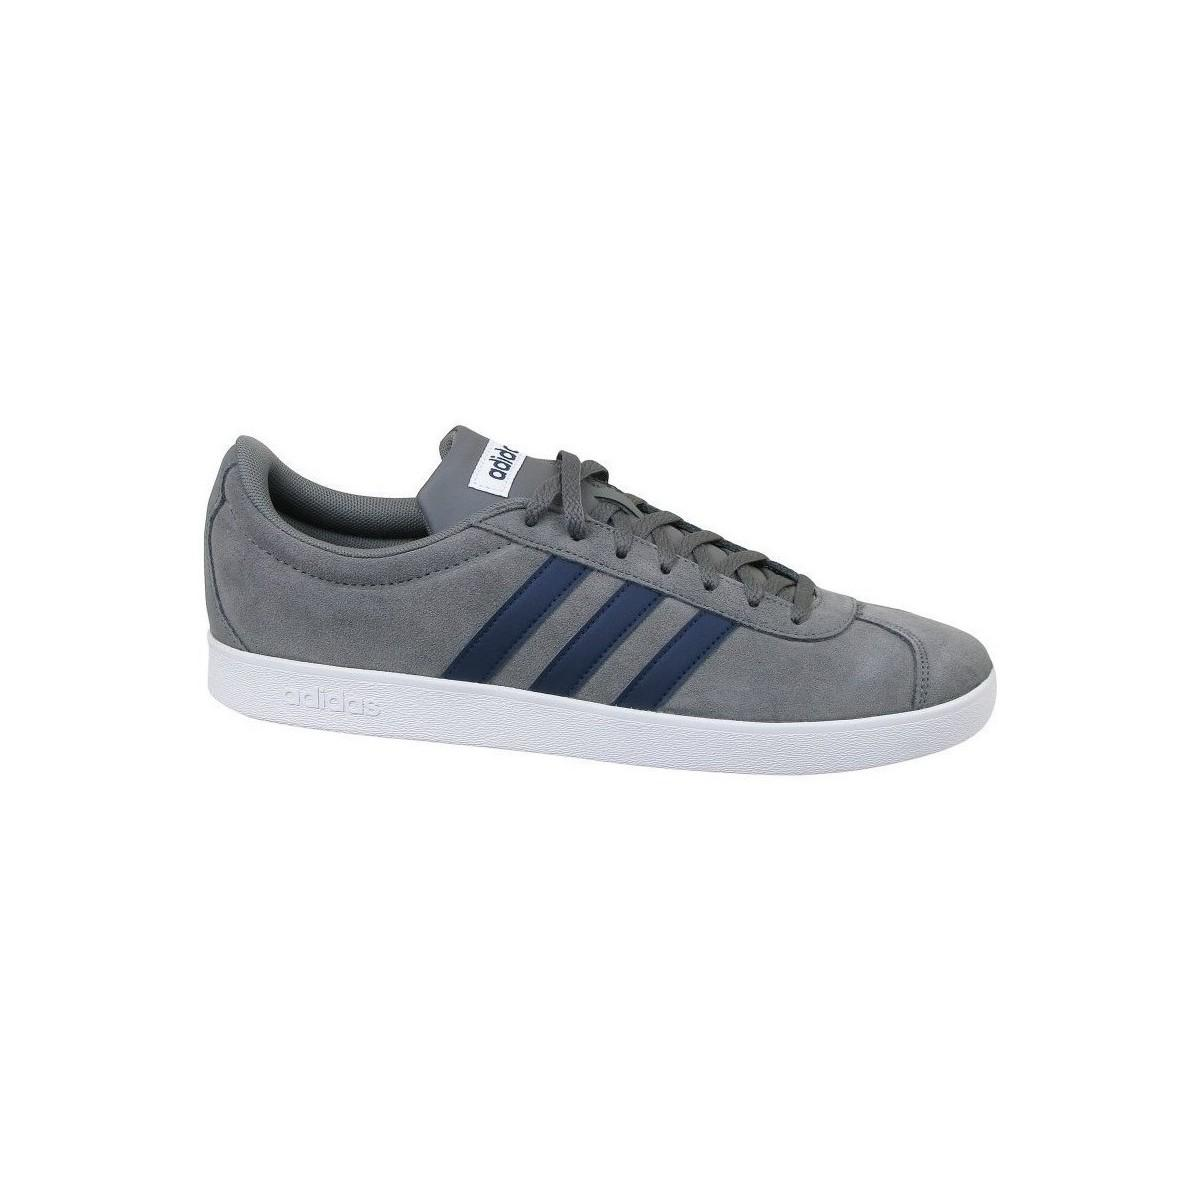 adidas Leather Vl Court 2.0 Skateboarding Shoes in Grey (Grey) for Men